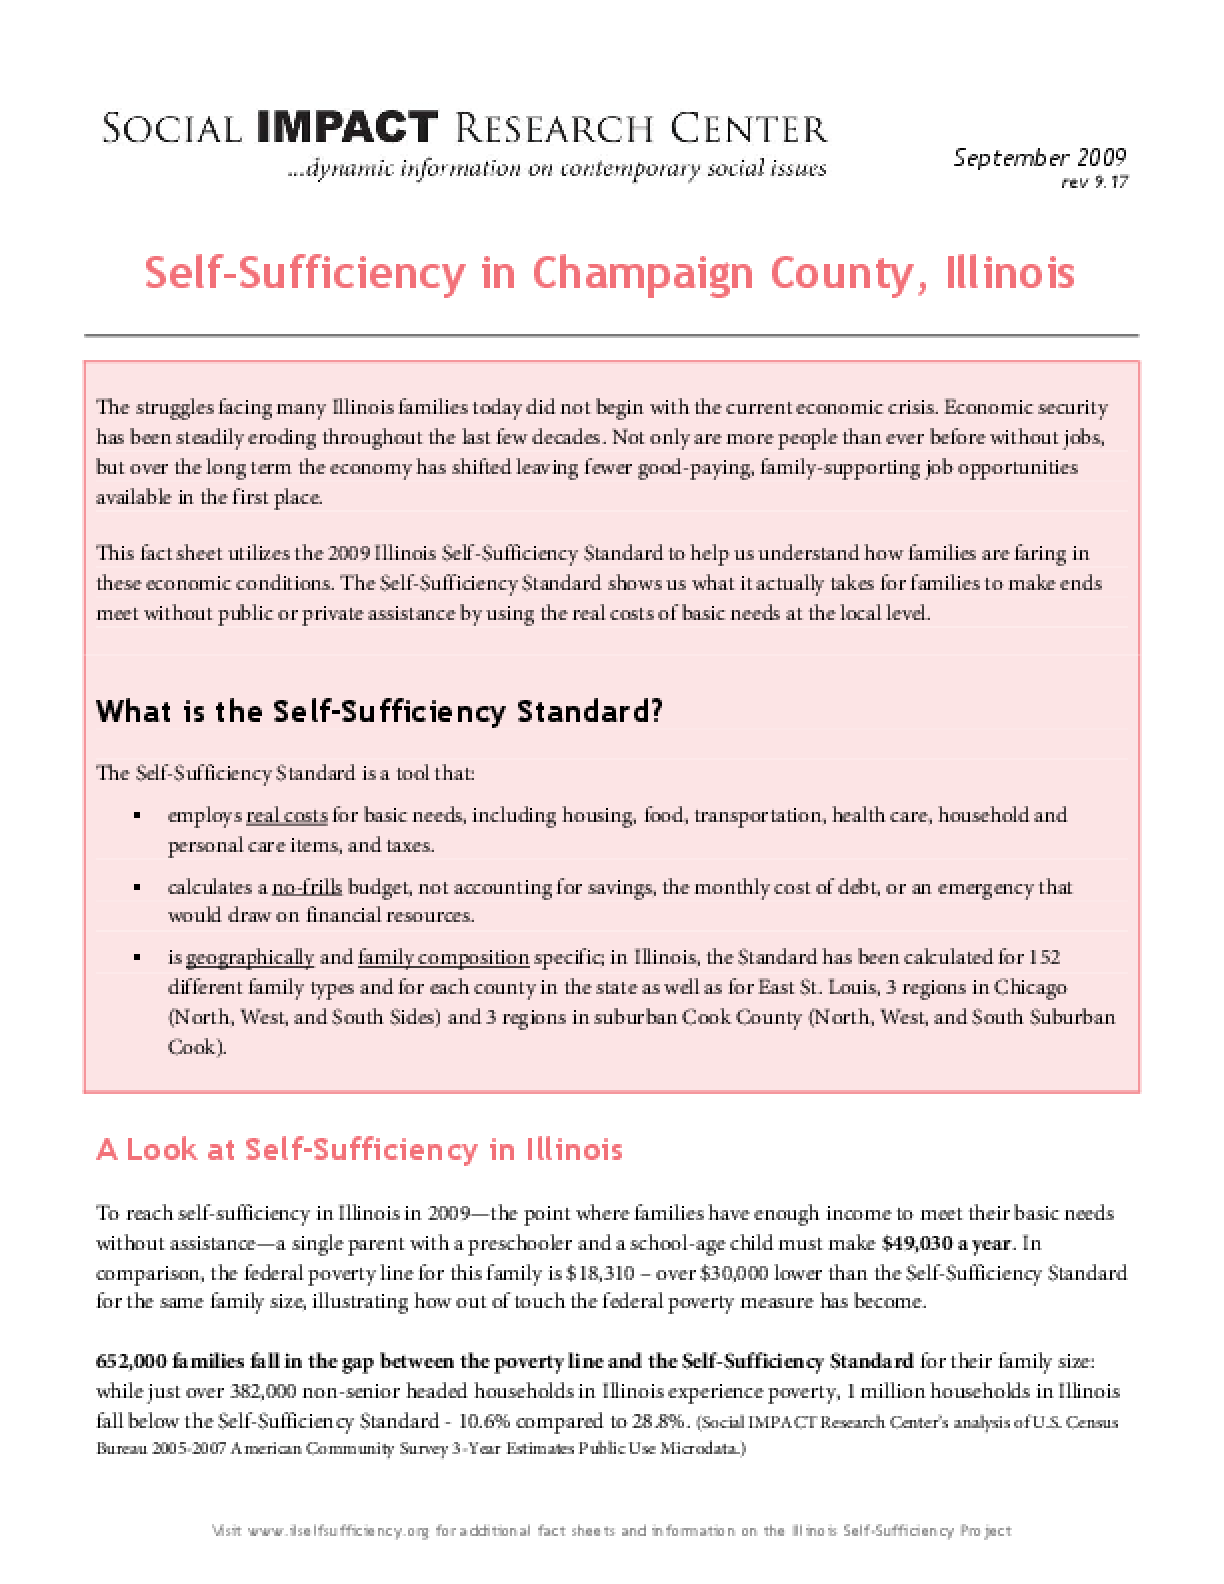 Self-Sufficiency in Champaign County, Illinois